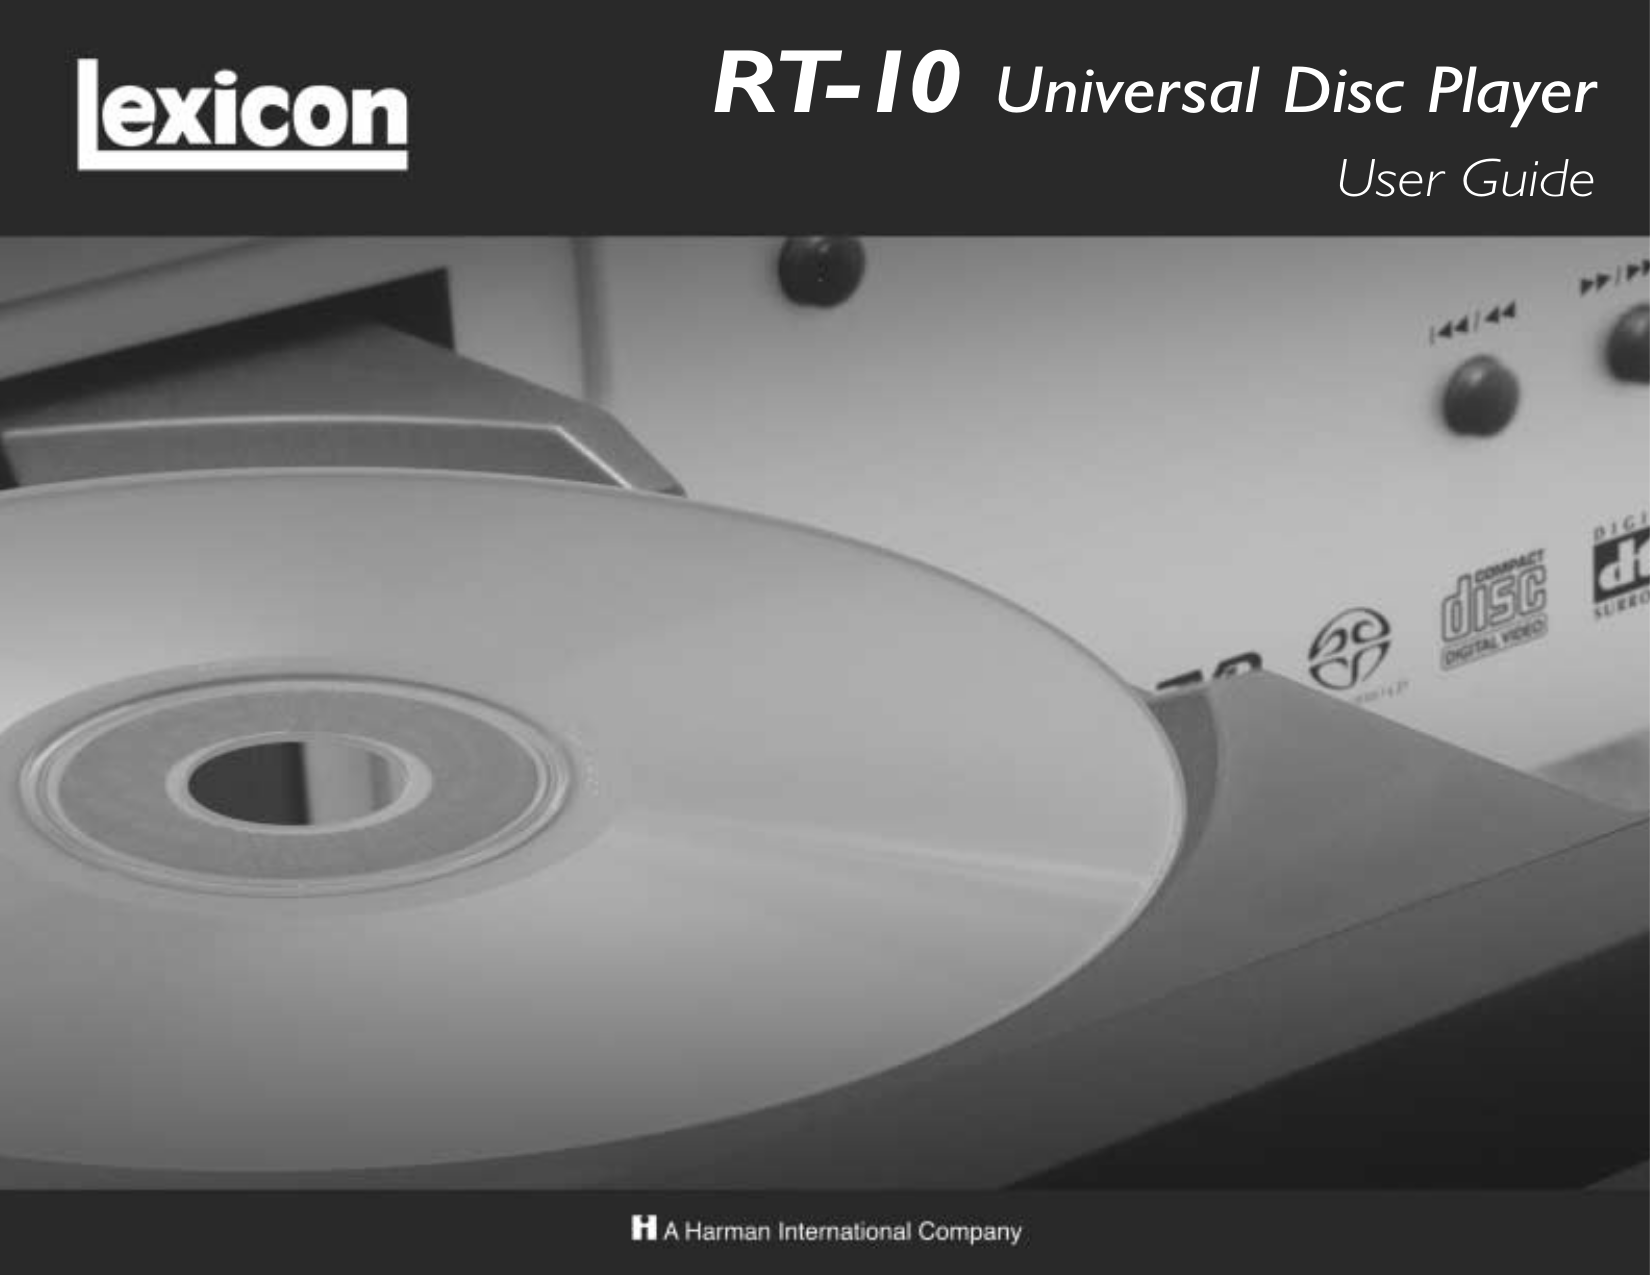 pdf for Lexicon DVD Players RT-10 manual